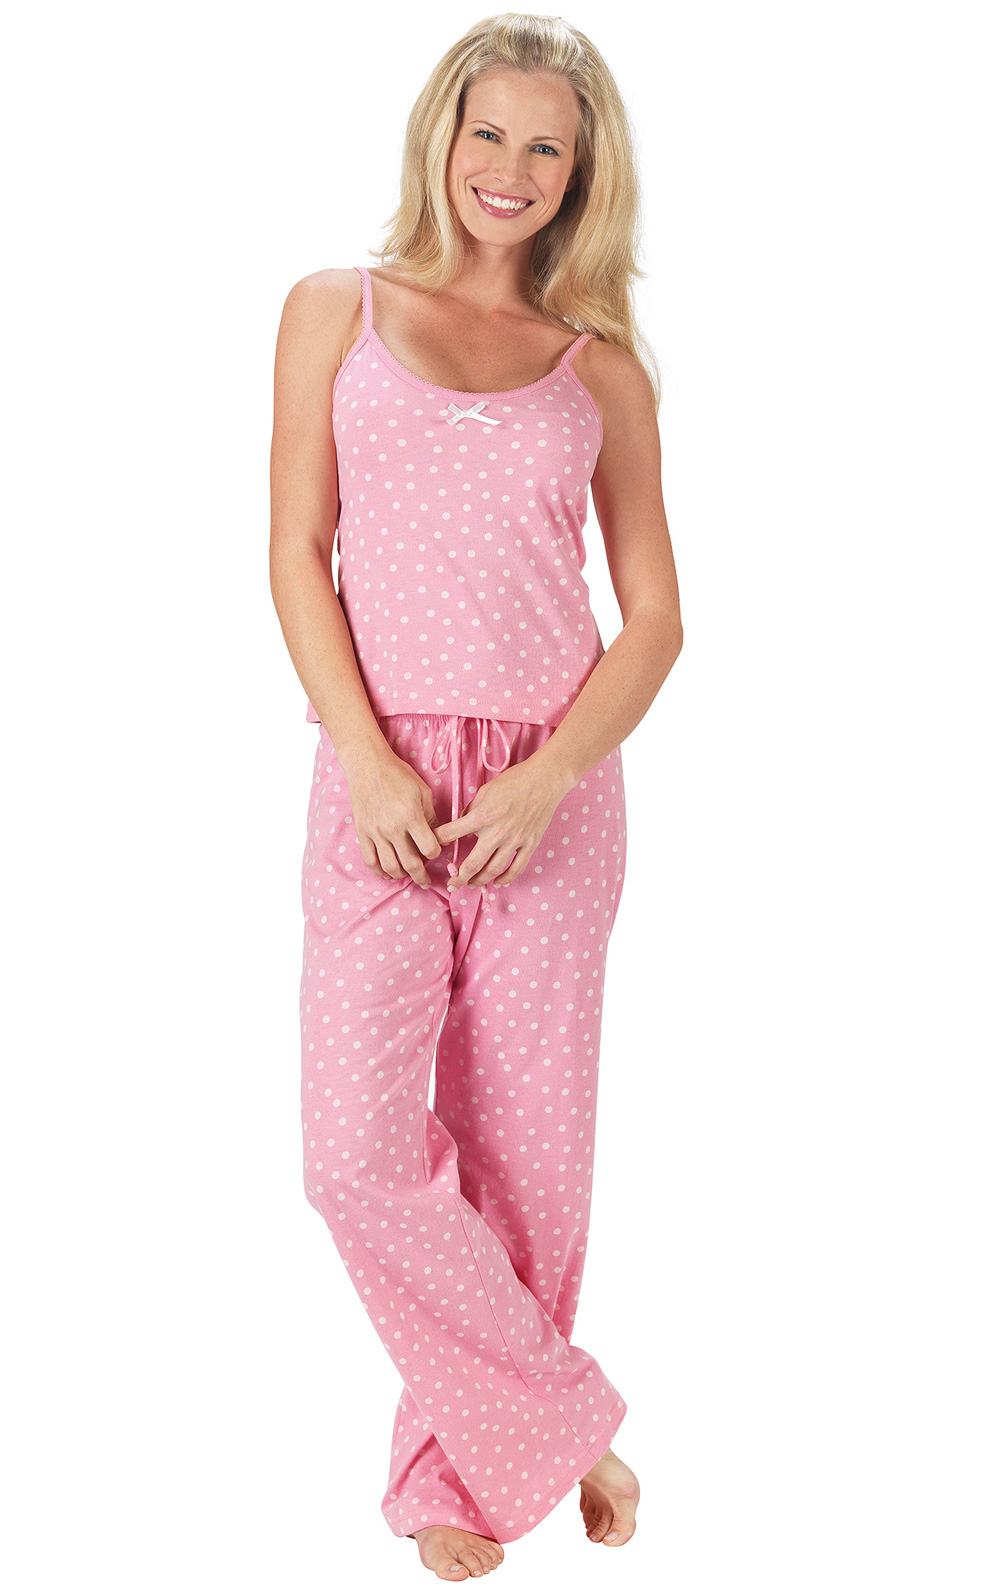 Womens Pjs | Womens Pjs Canada | Cheap Pjs for Women